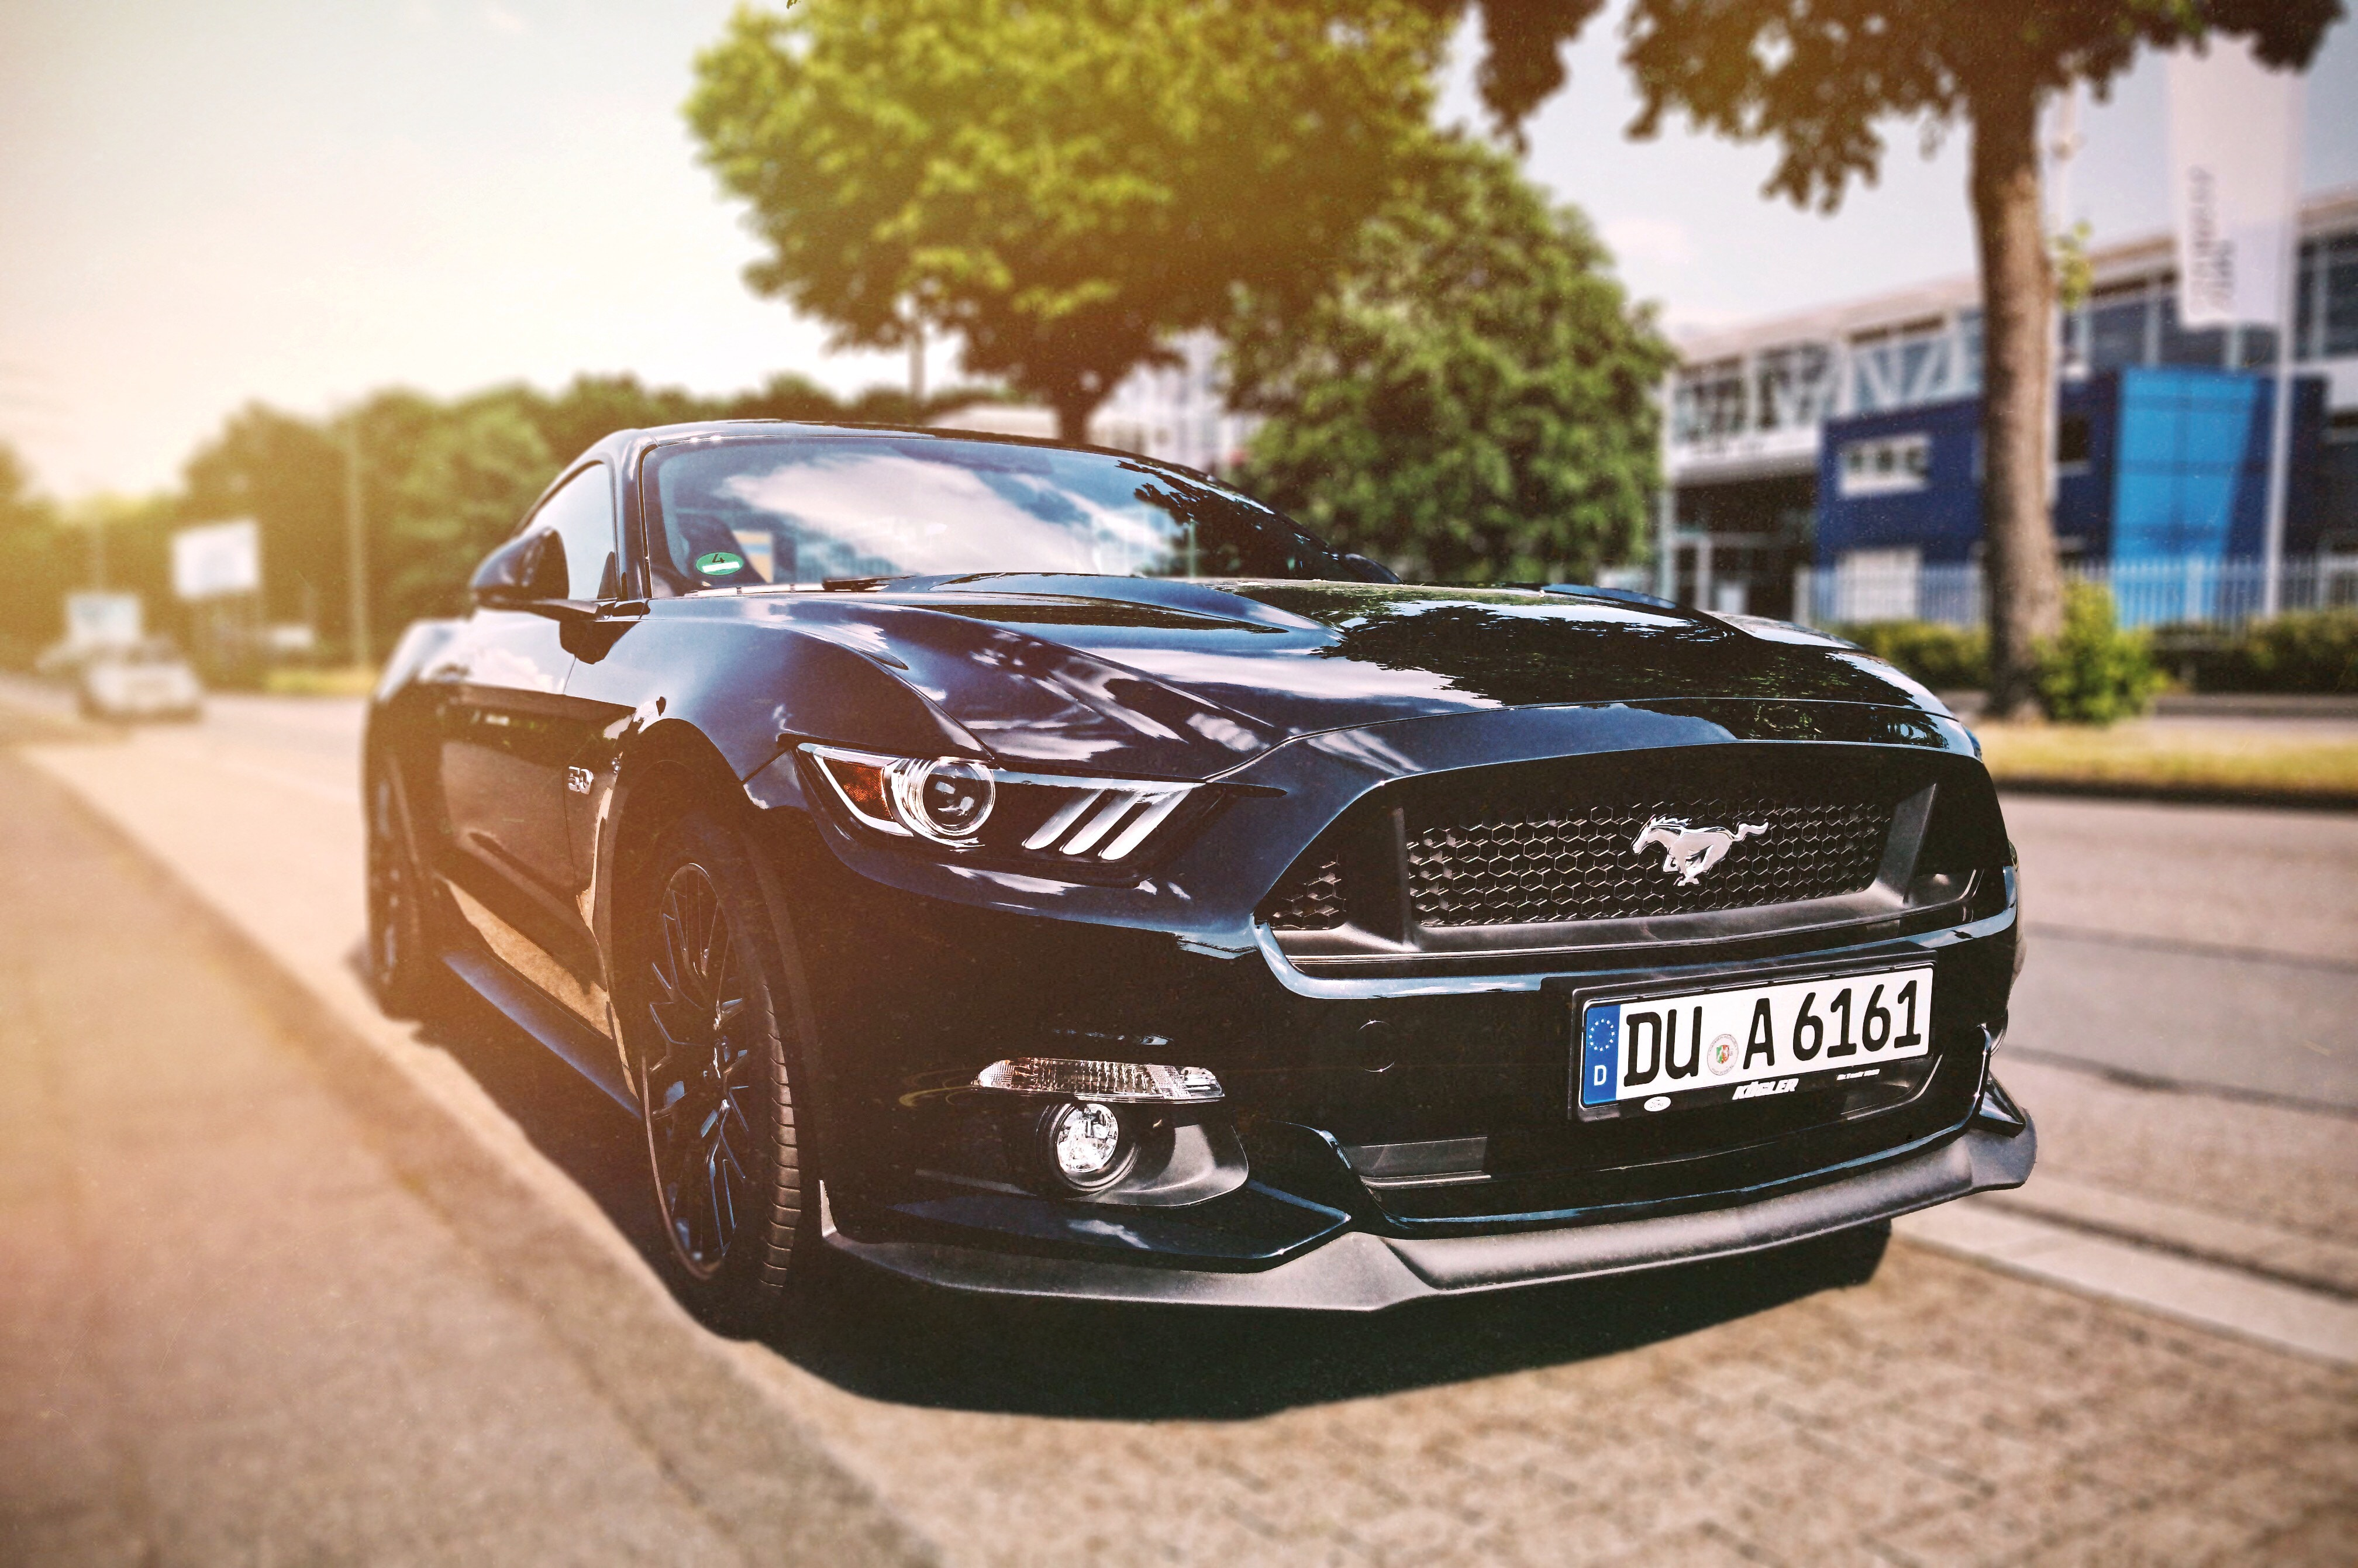 So You Wanna Buy A Car: 6 Tips For First-Time Car Buyers